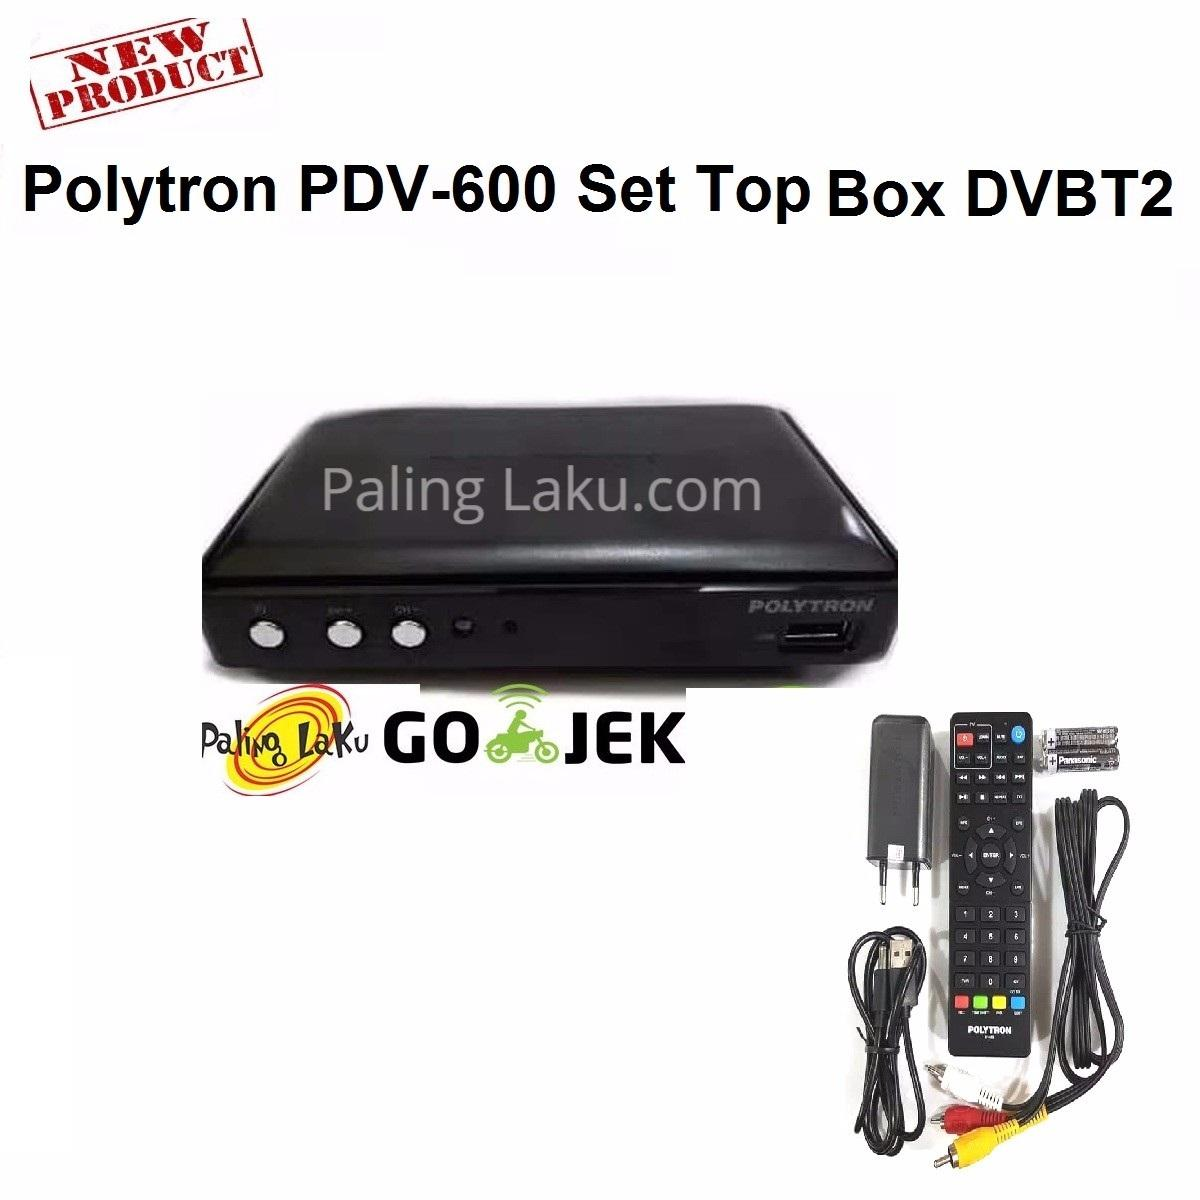 Polytron PDV-600 Set Top Box DVB T2